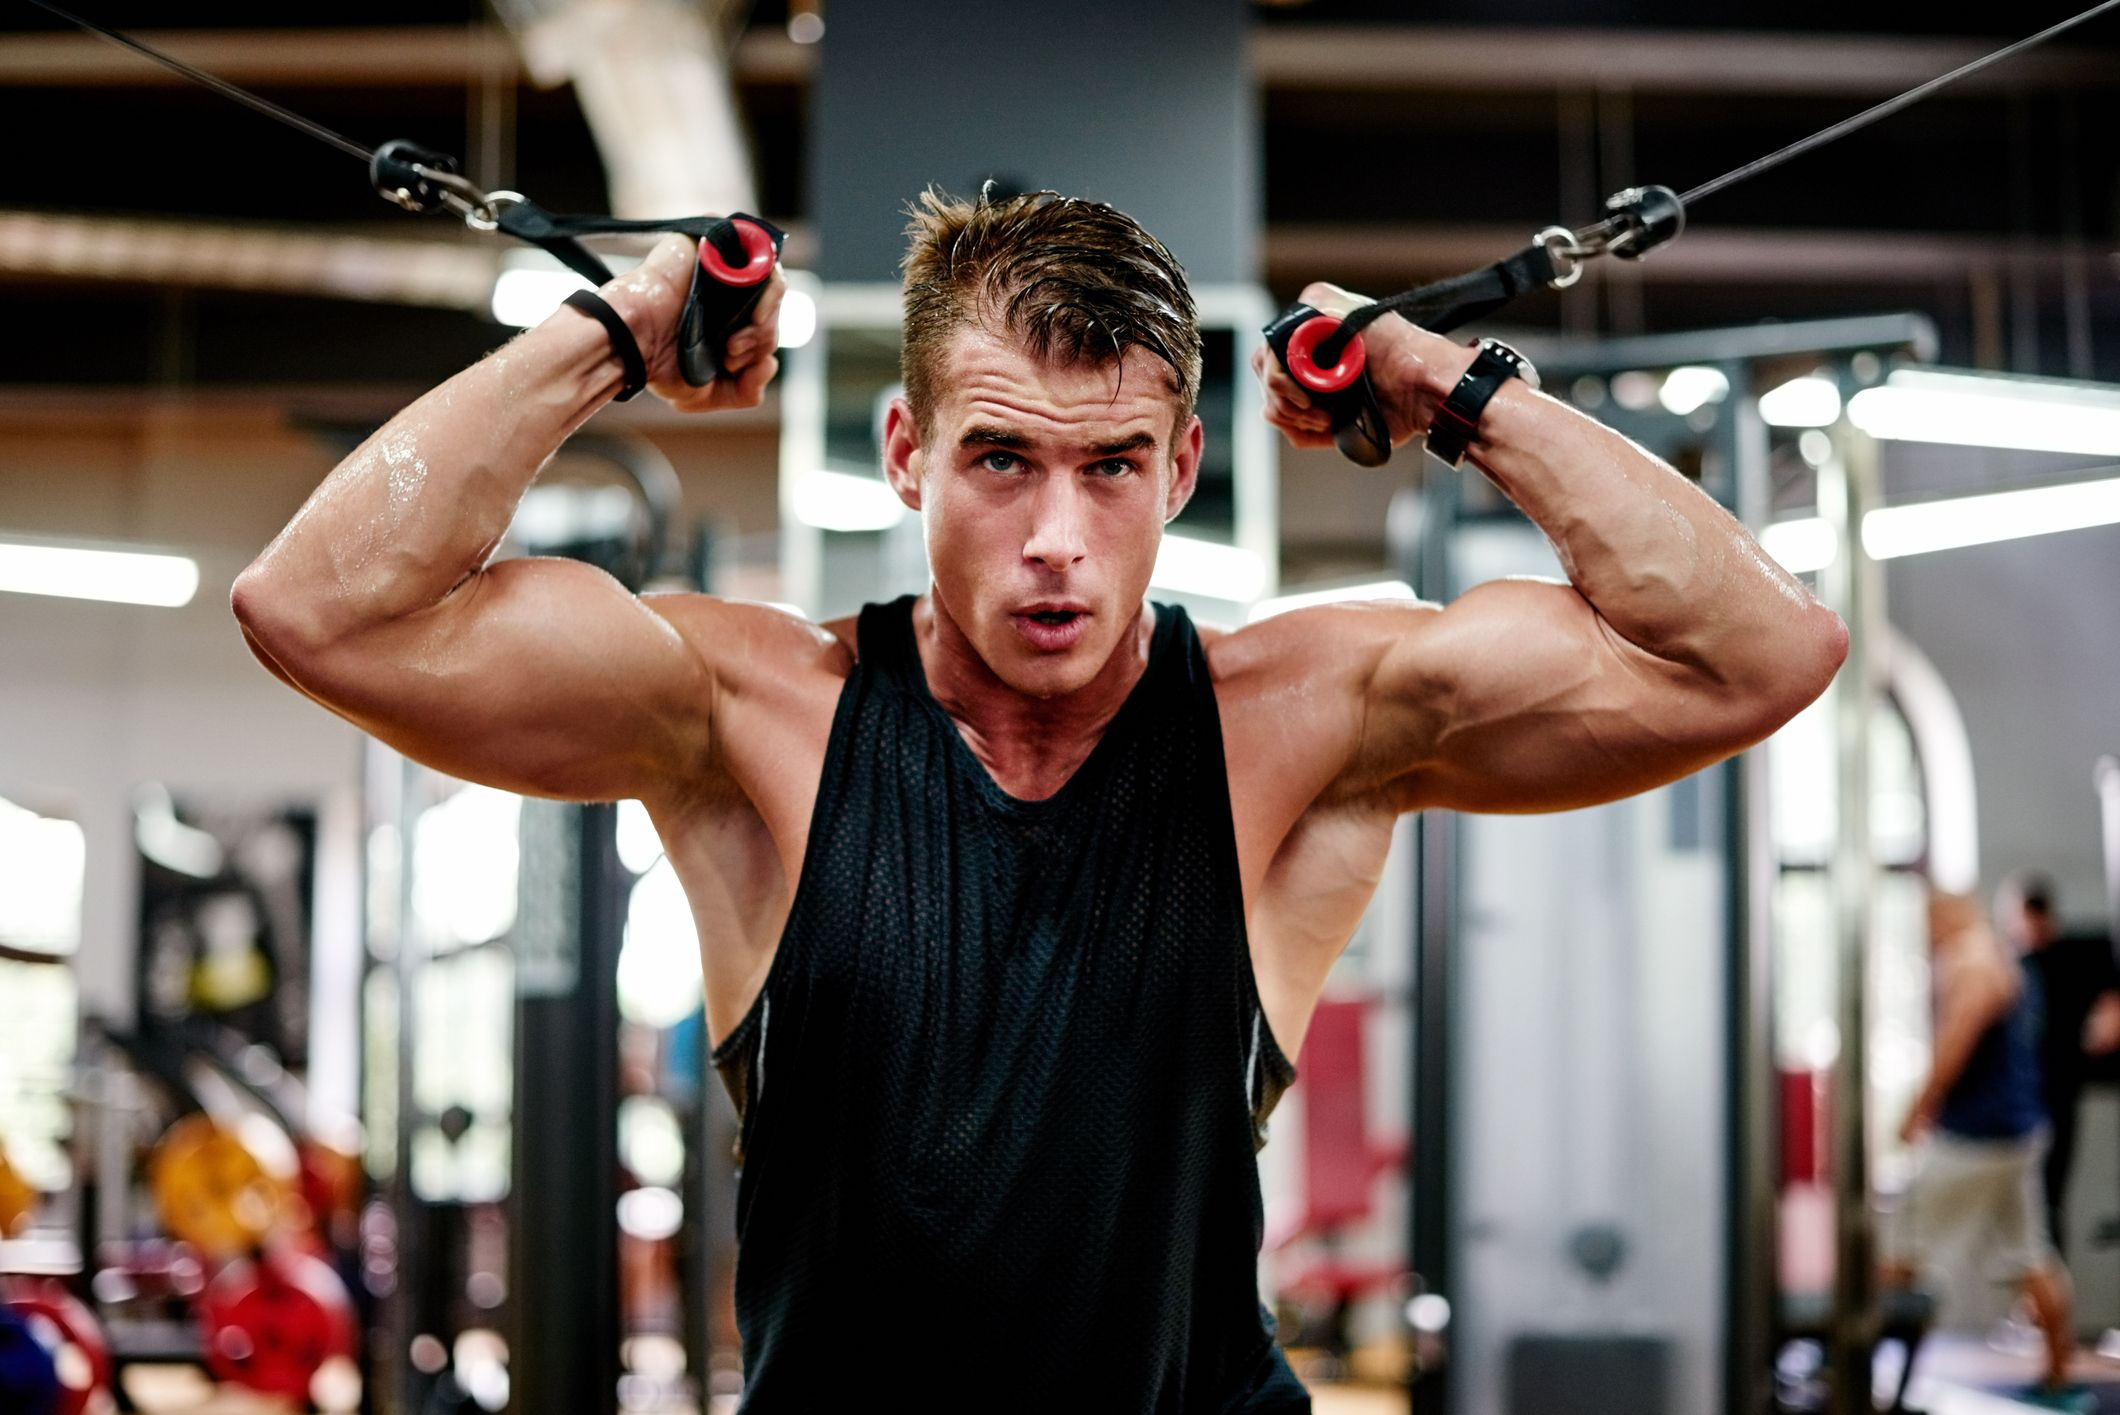 Become the Strongest, Leanest Version of Yourself with These 2 Full Body Workouts